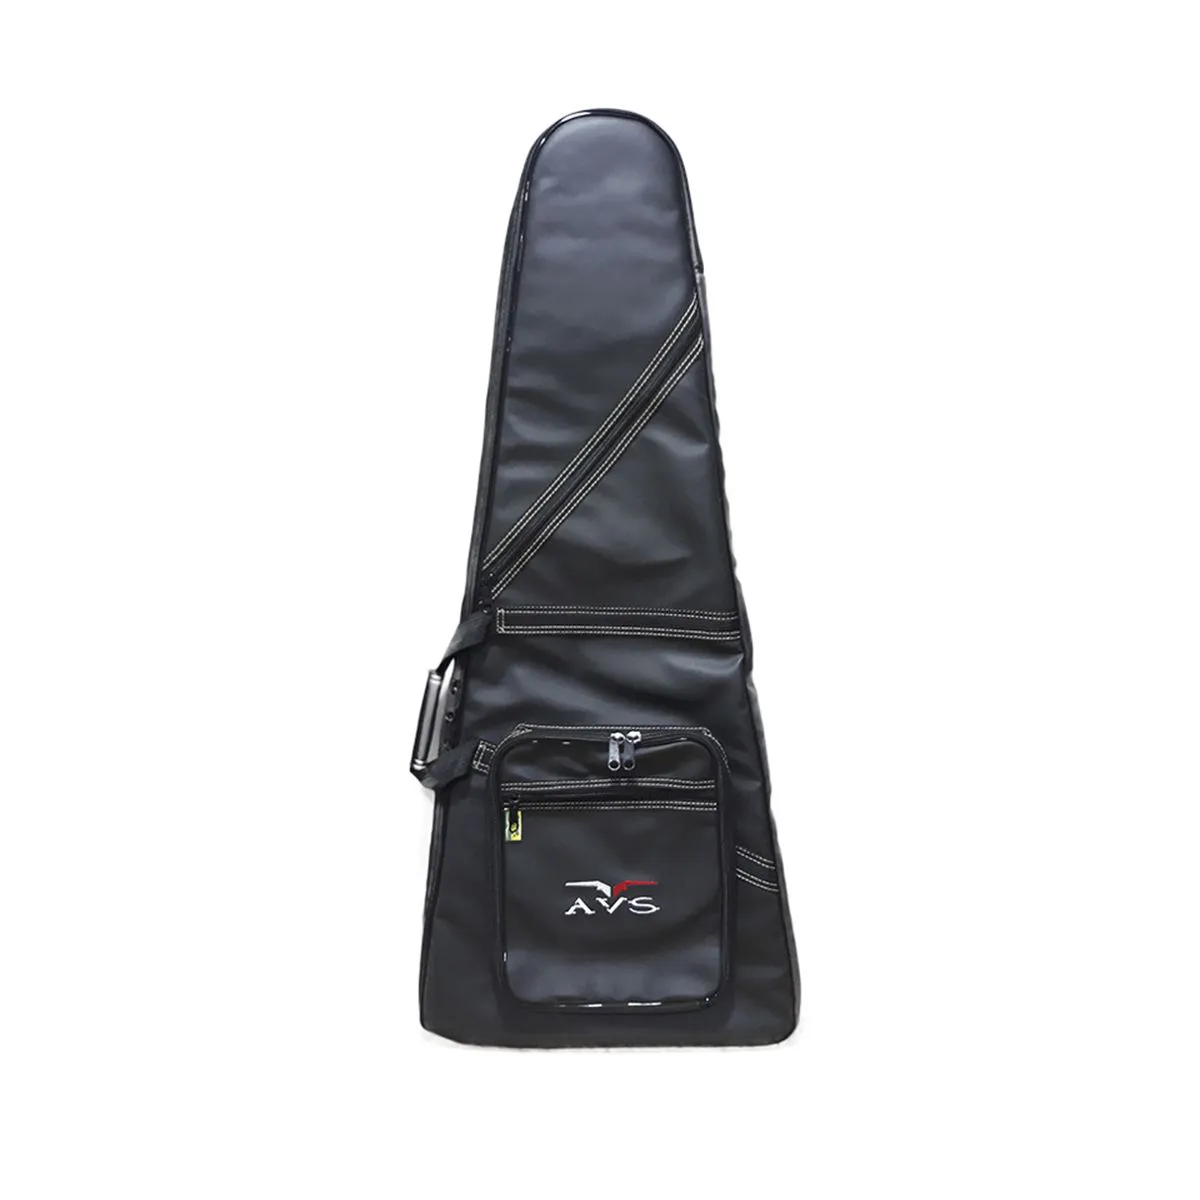 Bag Capa Avs Bic013ex Executive Preto Para Guitarra Flying V